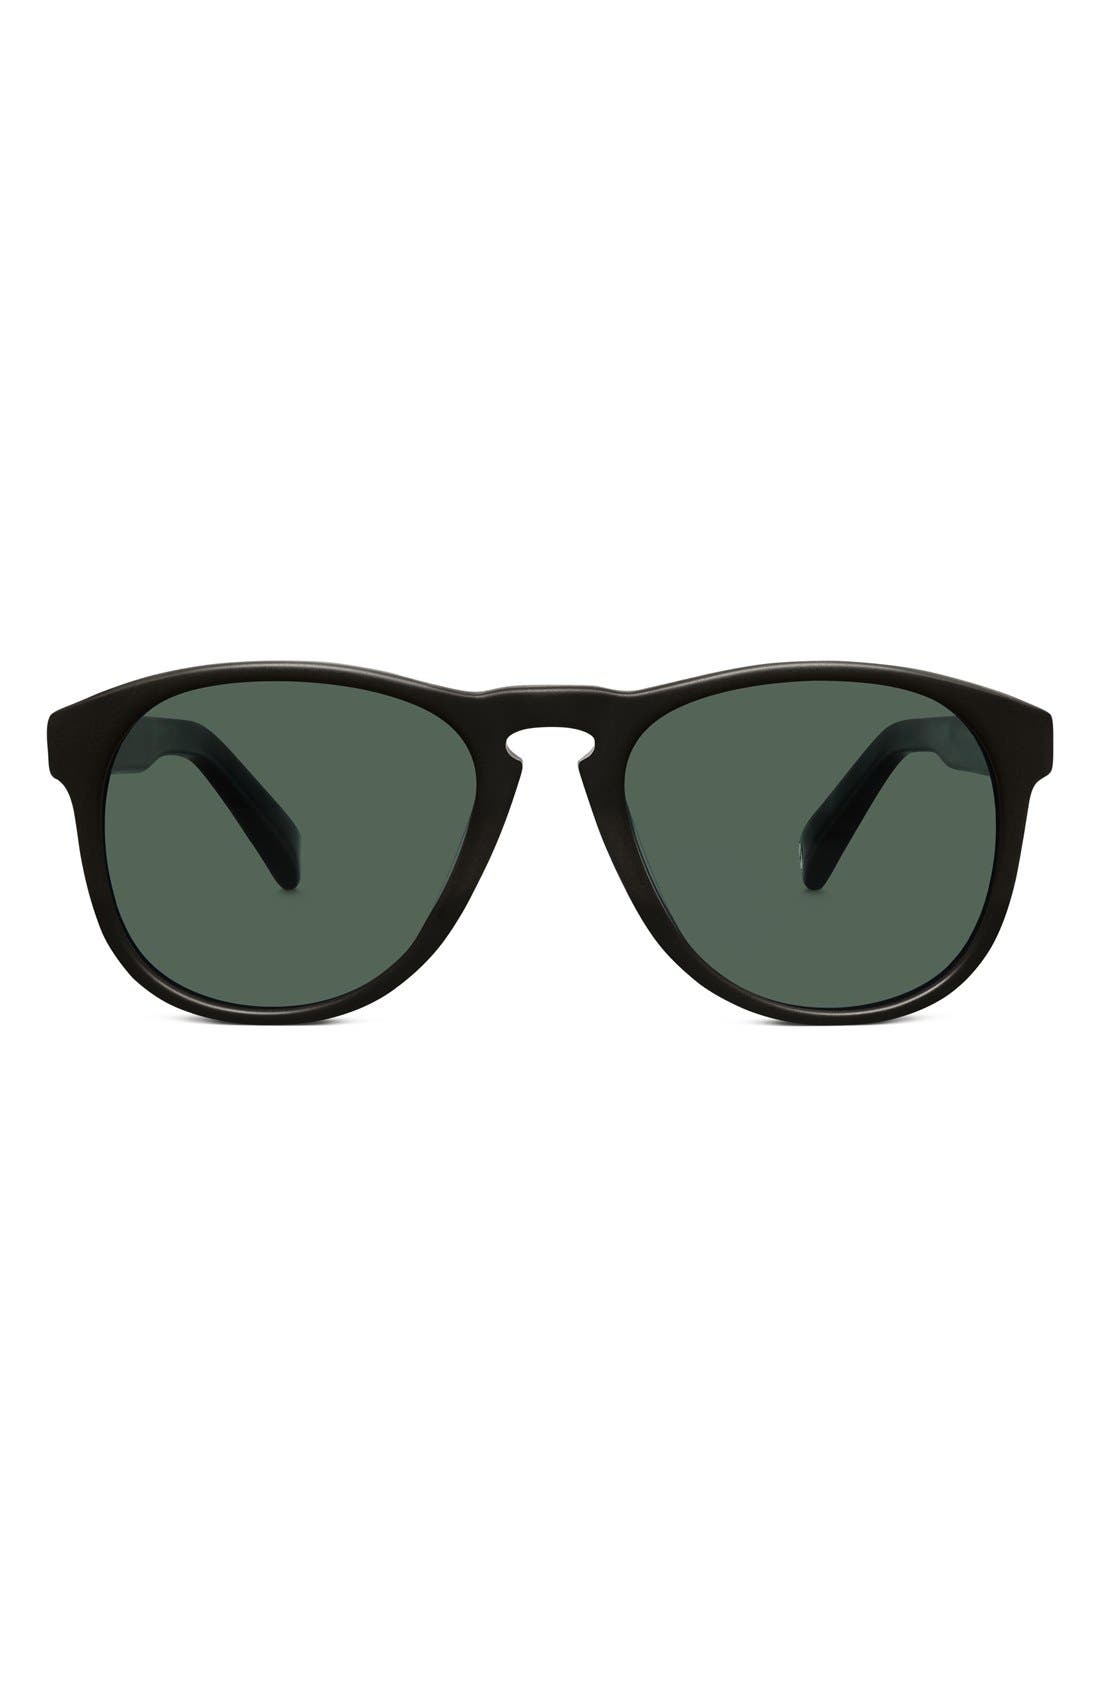 WARBY PARKER,                             'Griffin' 53mm Polarized Sunglasses,                             Main thumbnail 1, color,                             001